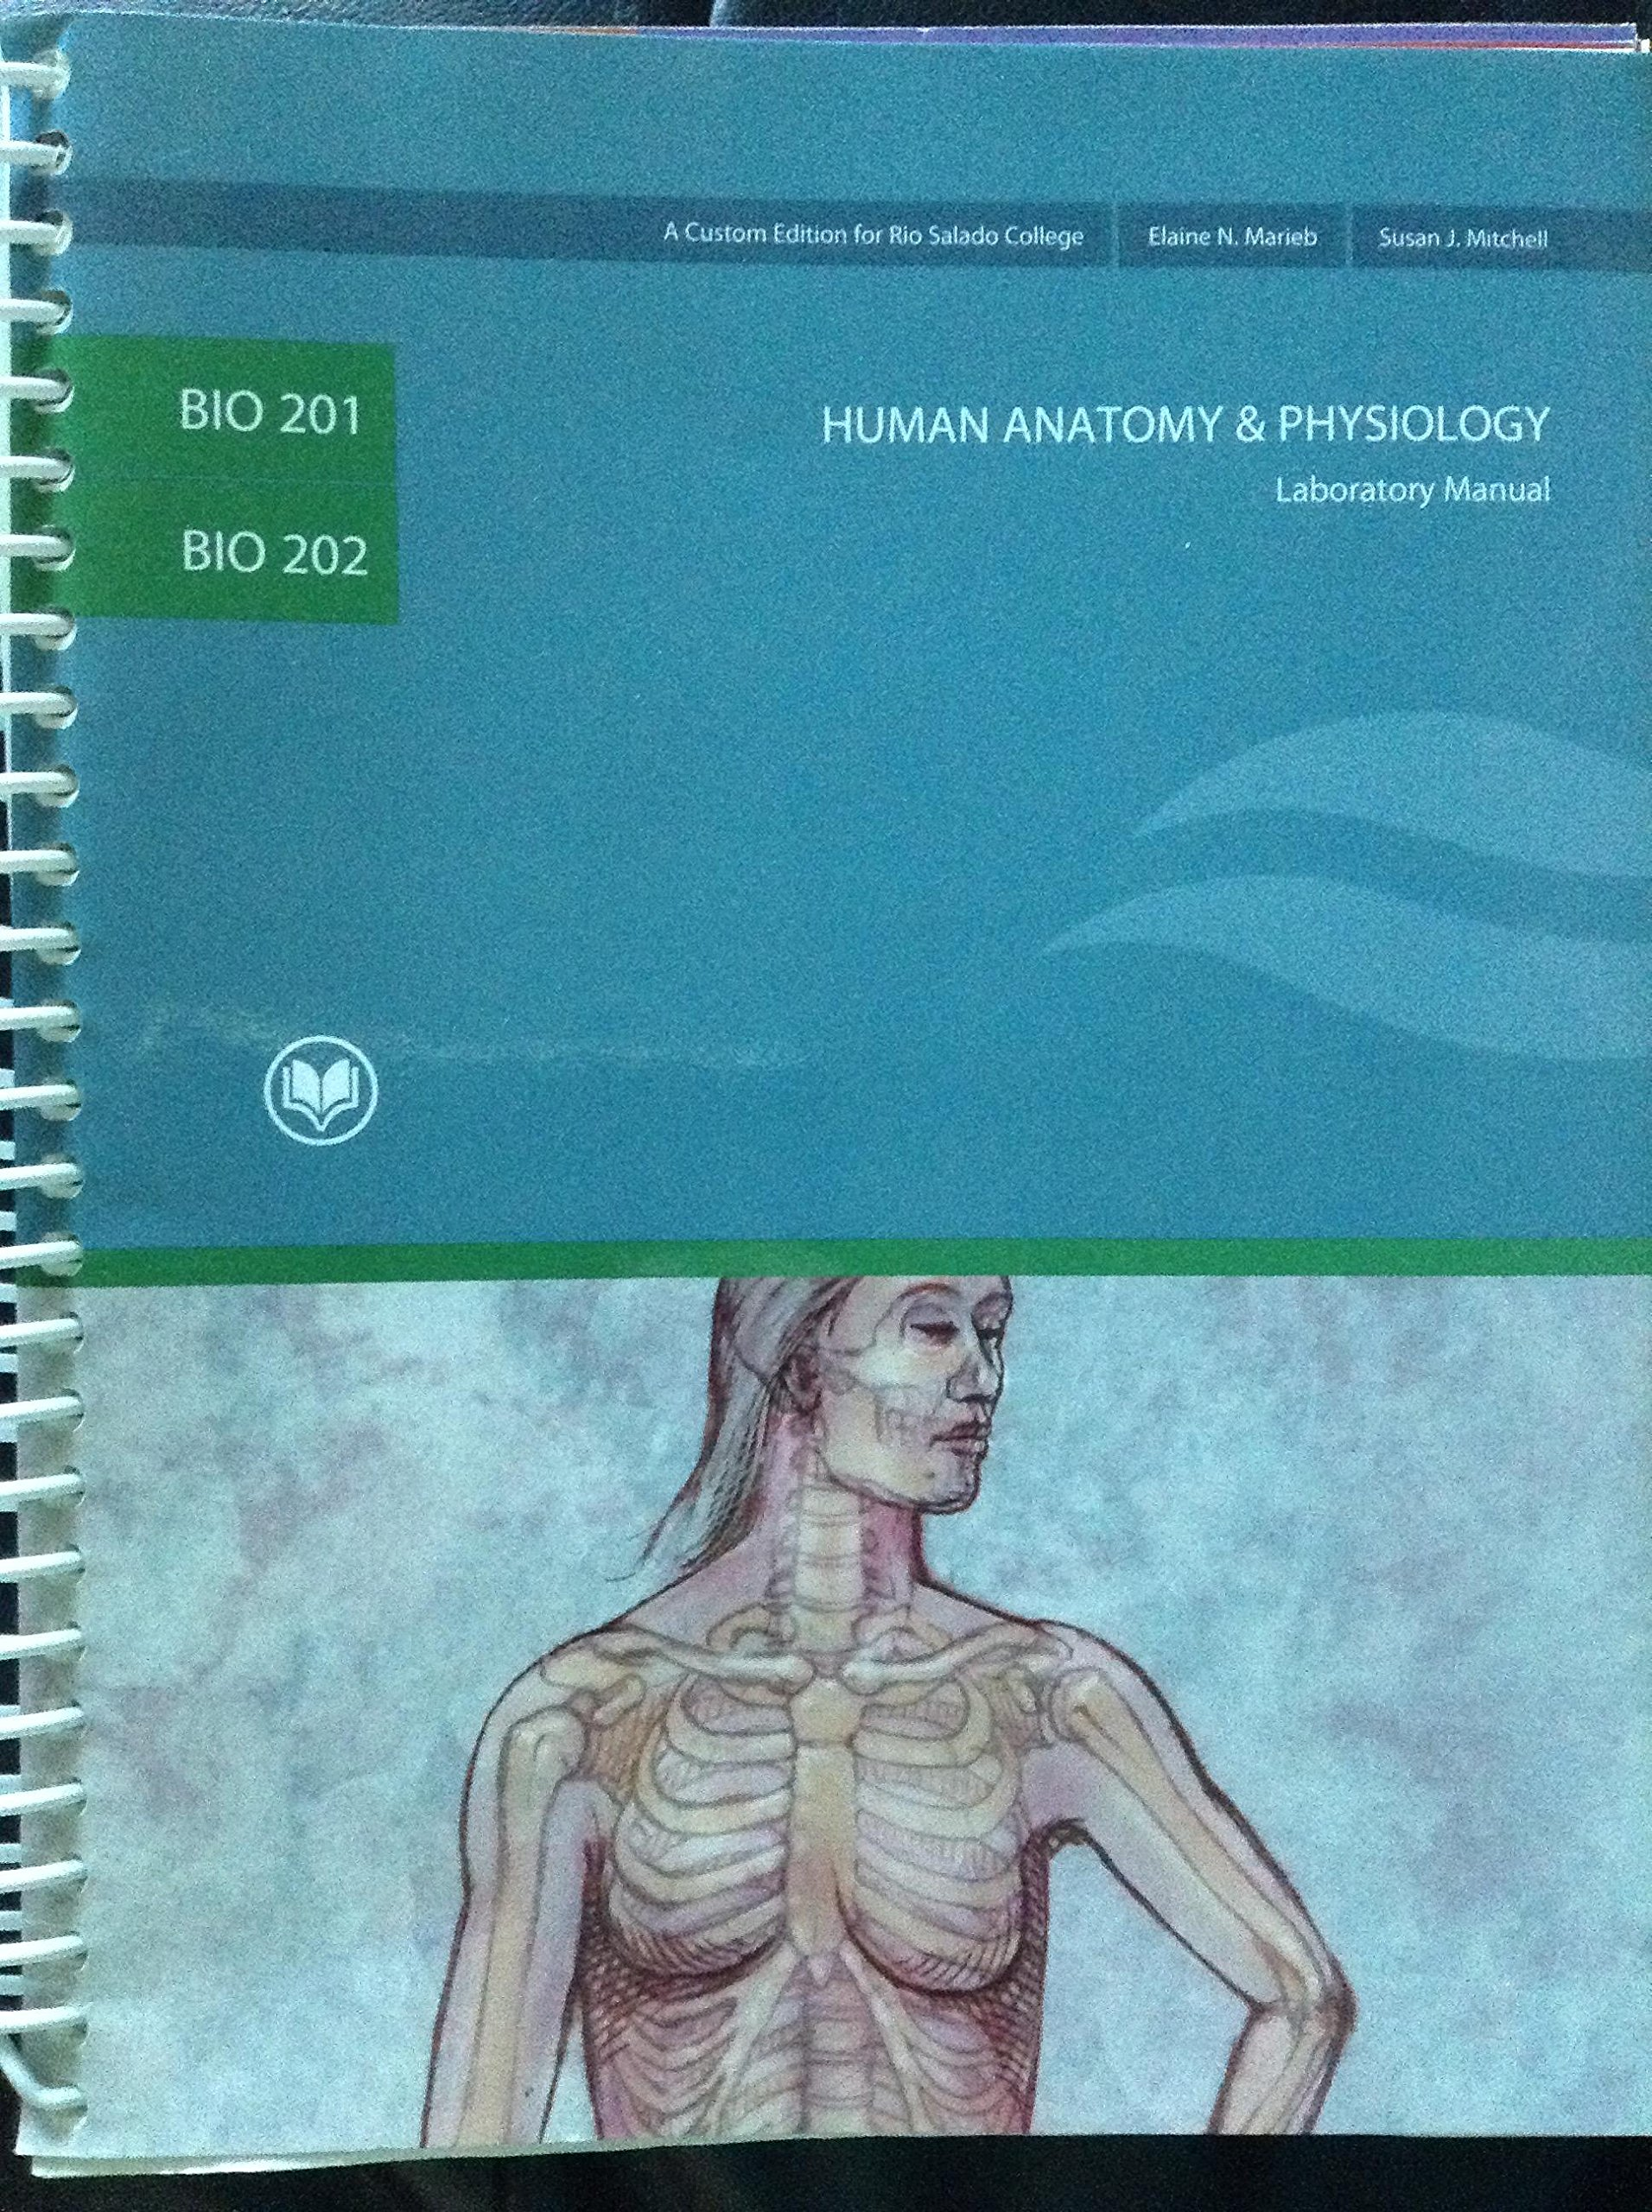 Human Anatomy & Physiology (Bio 201 & Bio 202, Custom Edition for ...